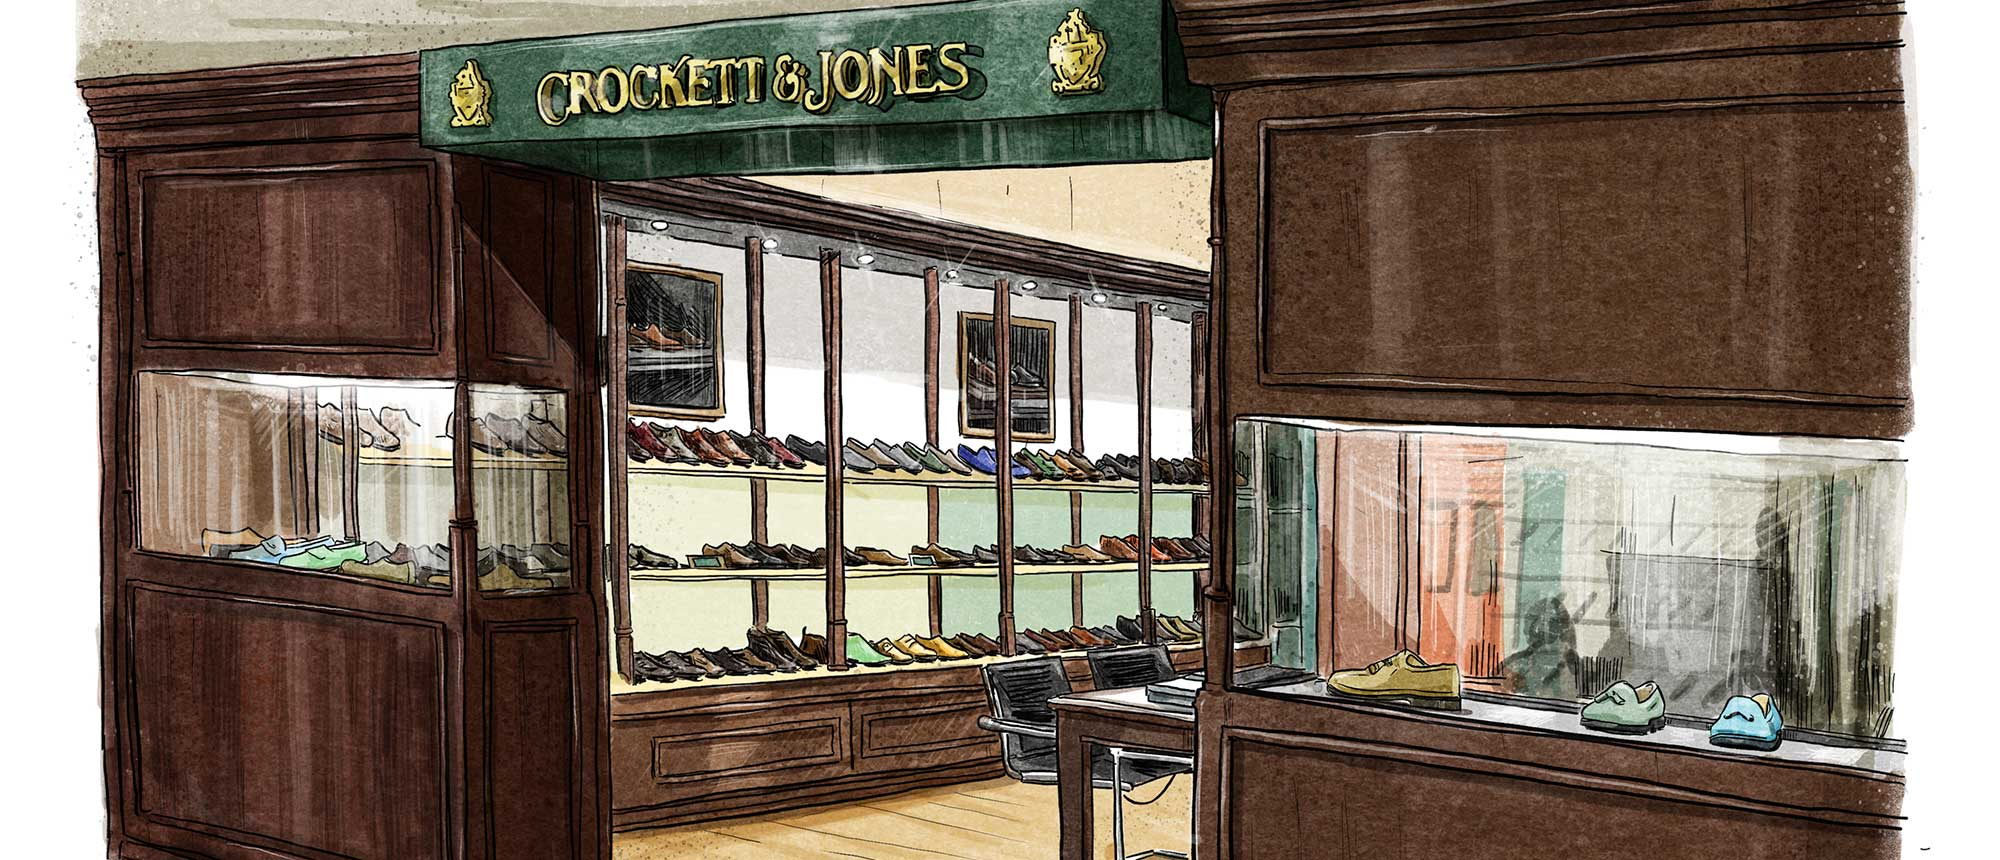 Crockett & Jones - Pitti UOMO 97